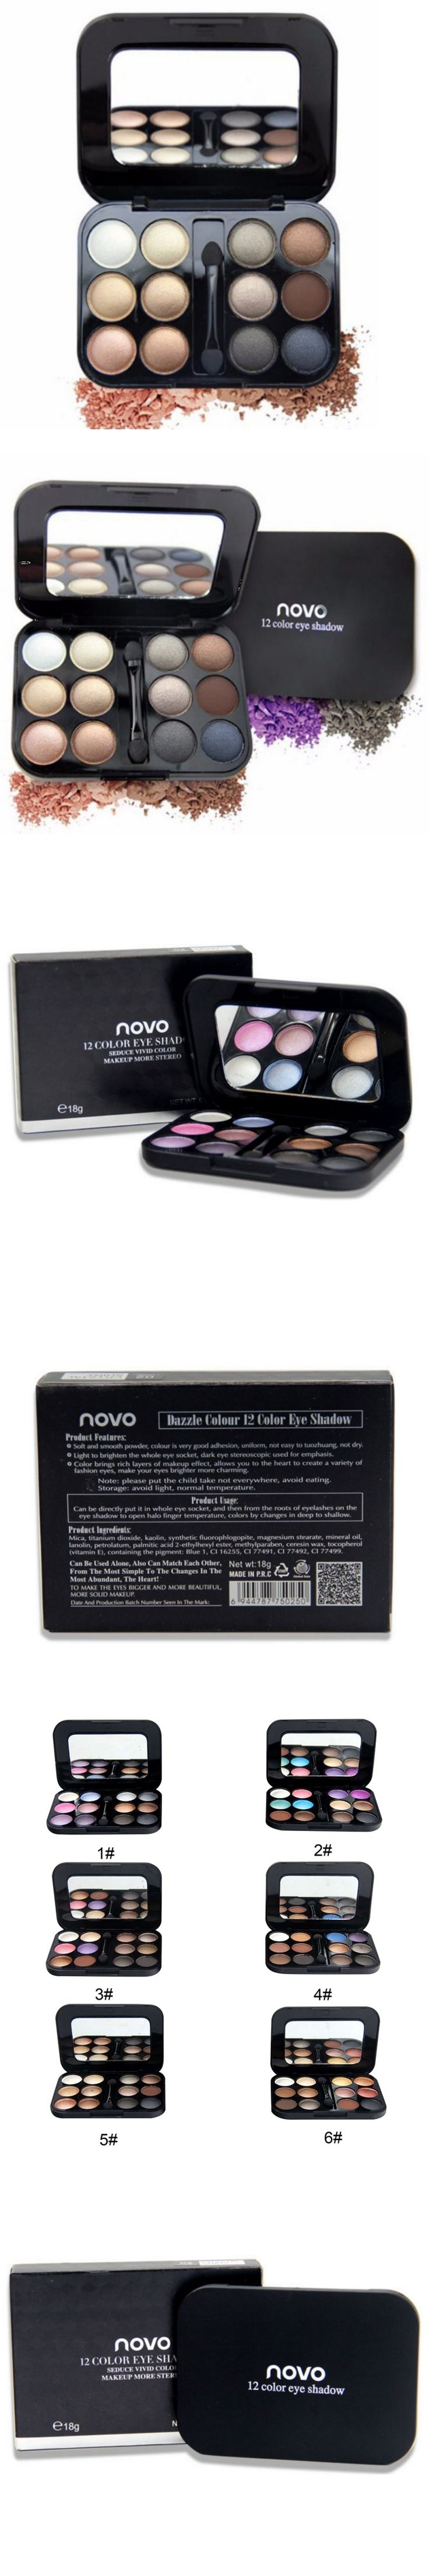 Women' Professional Eye Shadows Palette Makeup Smoky Shimmer Eyeshadow Palette Set Pigment eyeshadow 12 Color X2